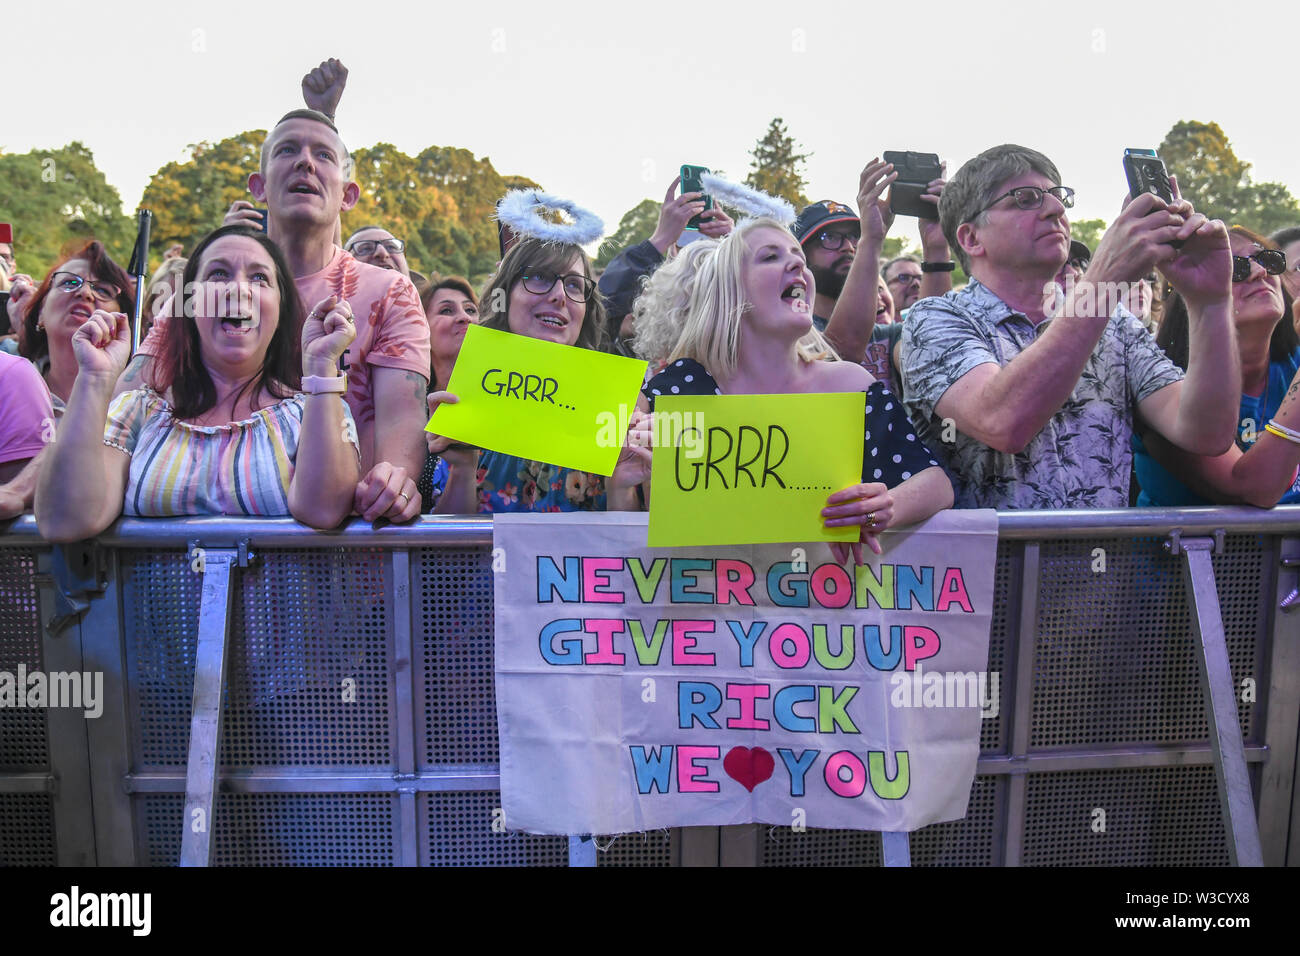 London, UK. 14th July 2019. Thousands screaming fans at Rick Astley, 80s icon returned performs at Kew the Music 2019 on 14 July 2019, London, UK. Credit: Picture Capital/Alamy Live News - Stock Image